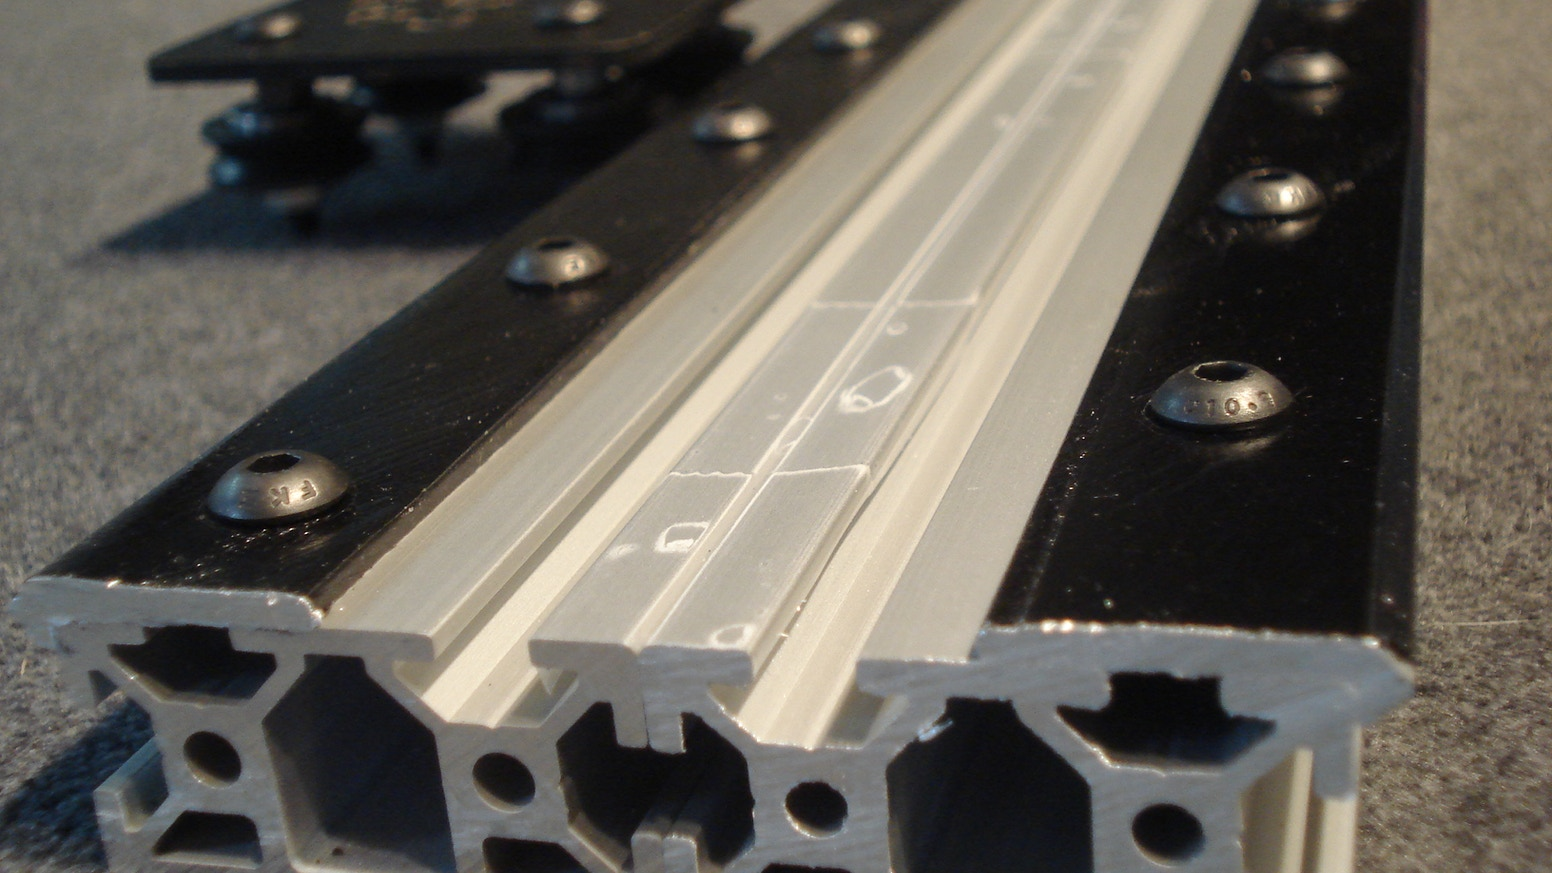 OpenBuilds Open Rail is a new open source universal linear rail system designed to be used with various T- Slot aluminum extrusion configurations.